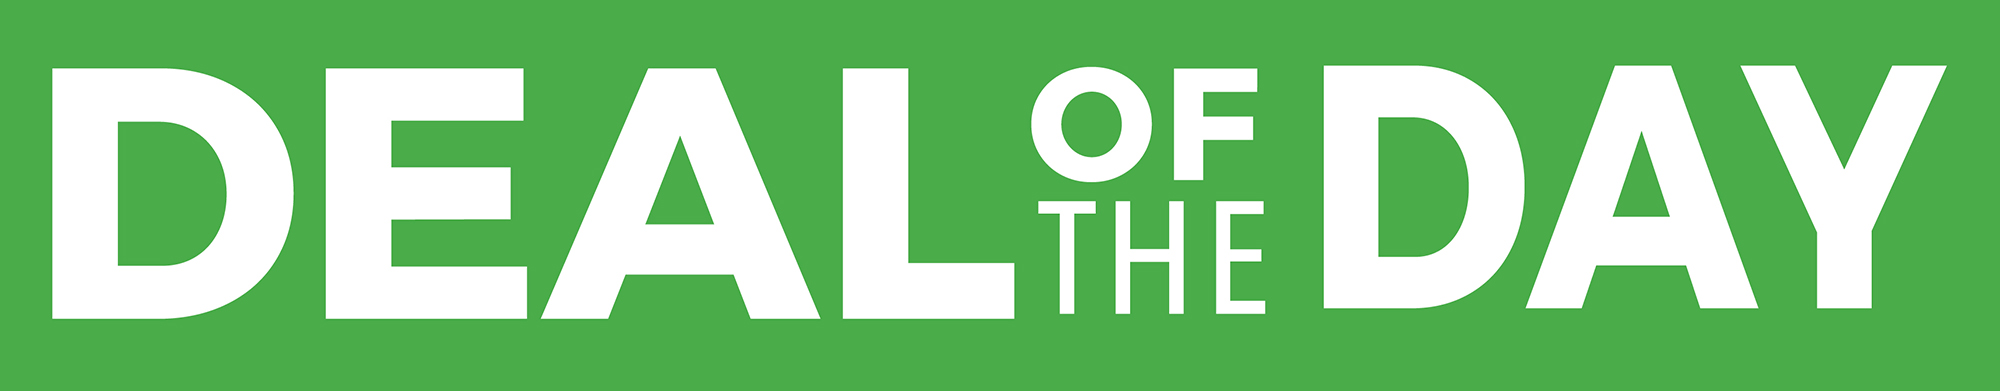 Deal of the Day Logo